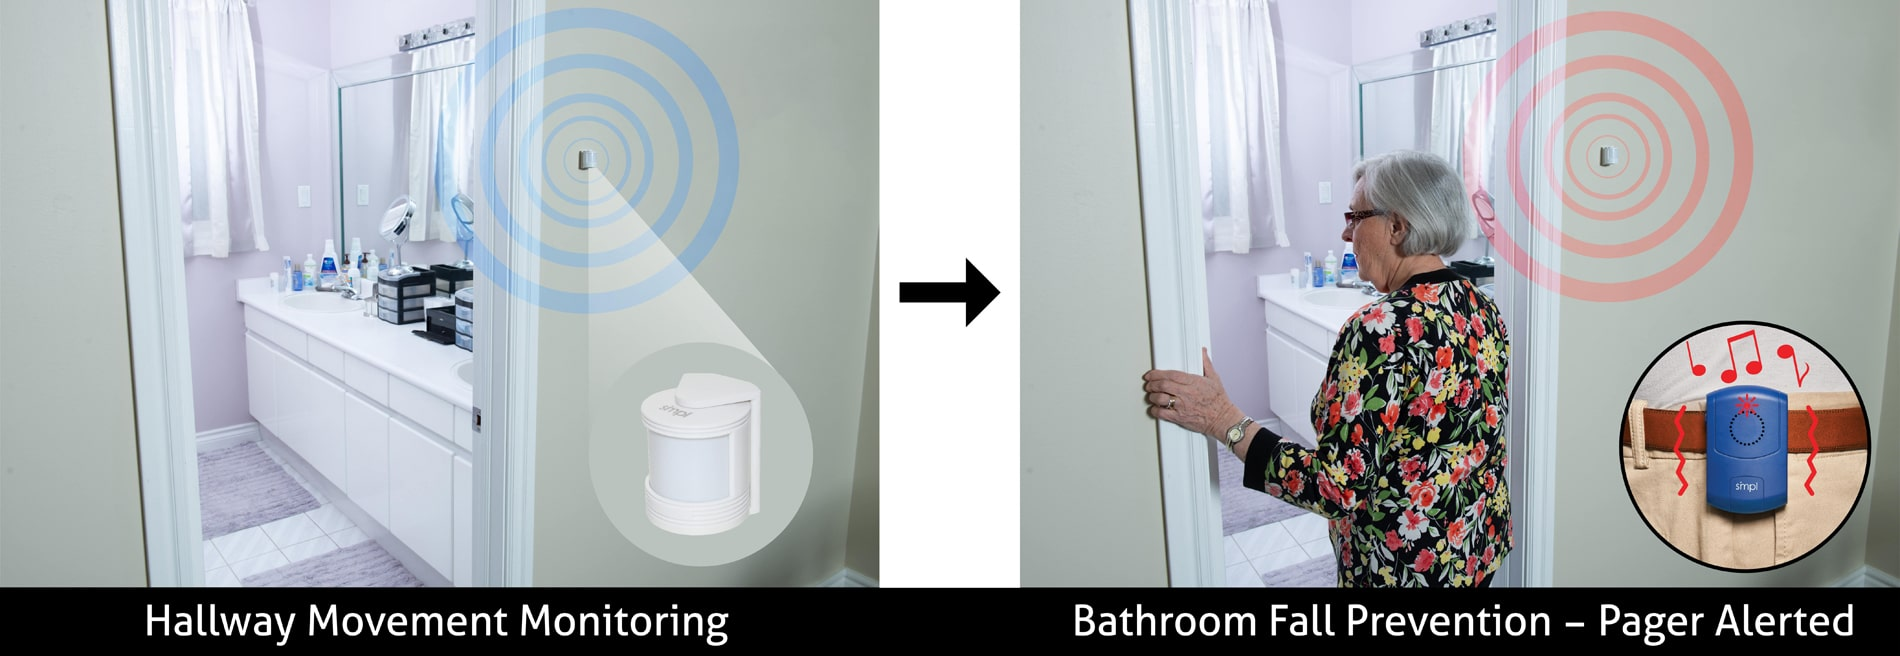 Hallway Monitoring - Bathroom Fall Prevention